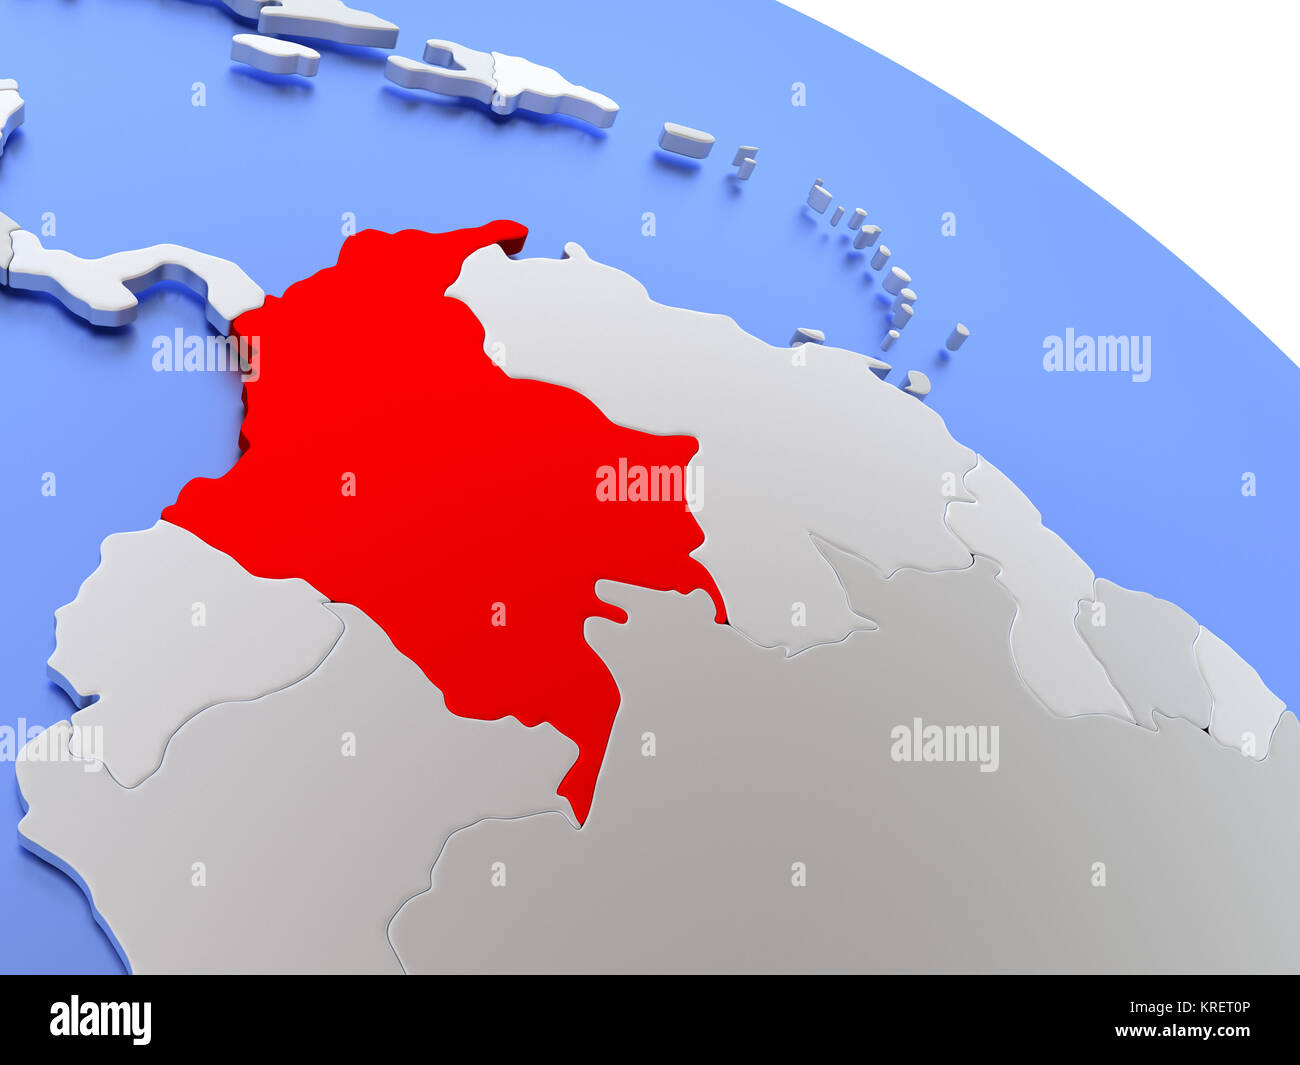 Colombia on world map Stock Photo: 169356566 - Alamy